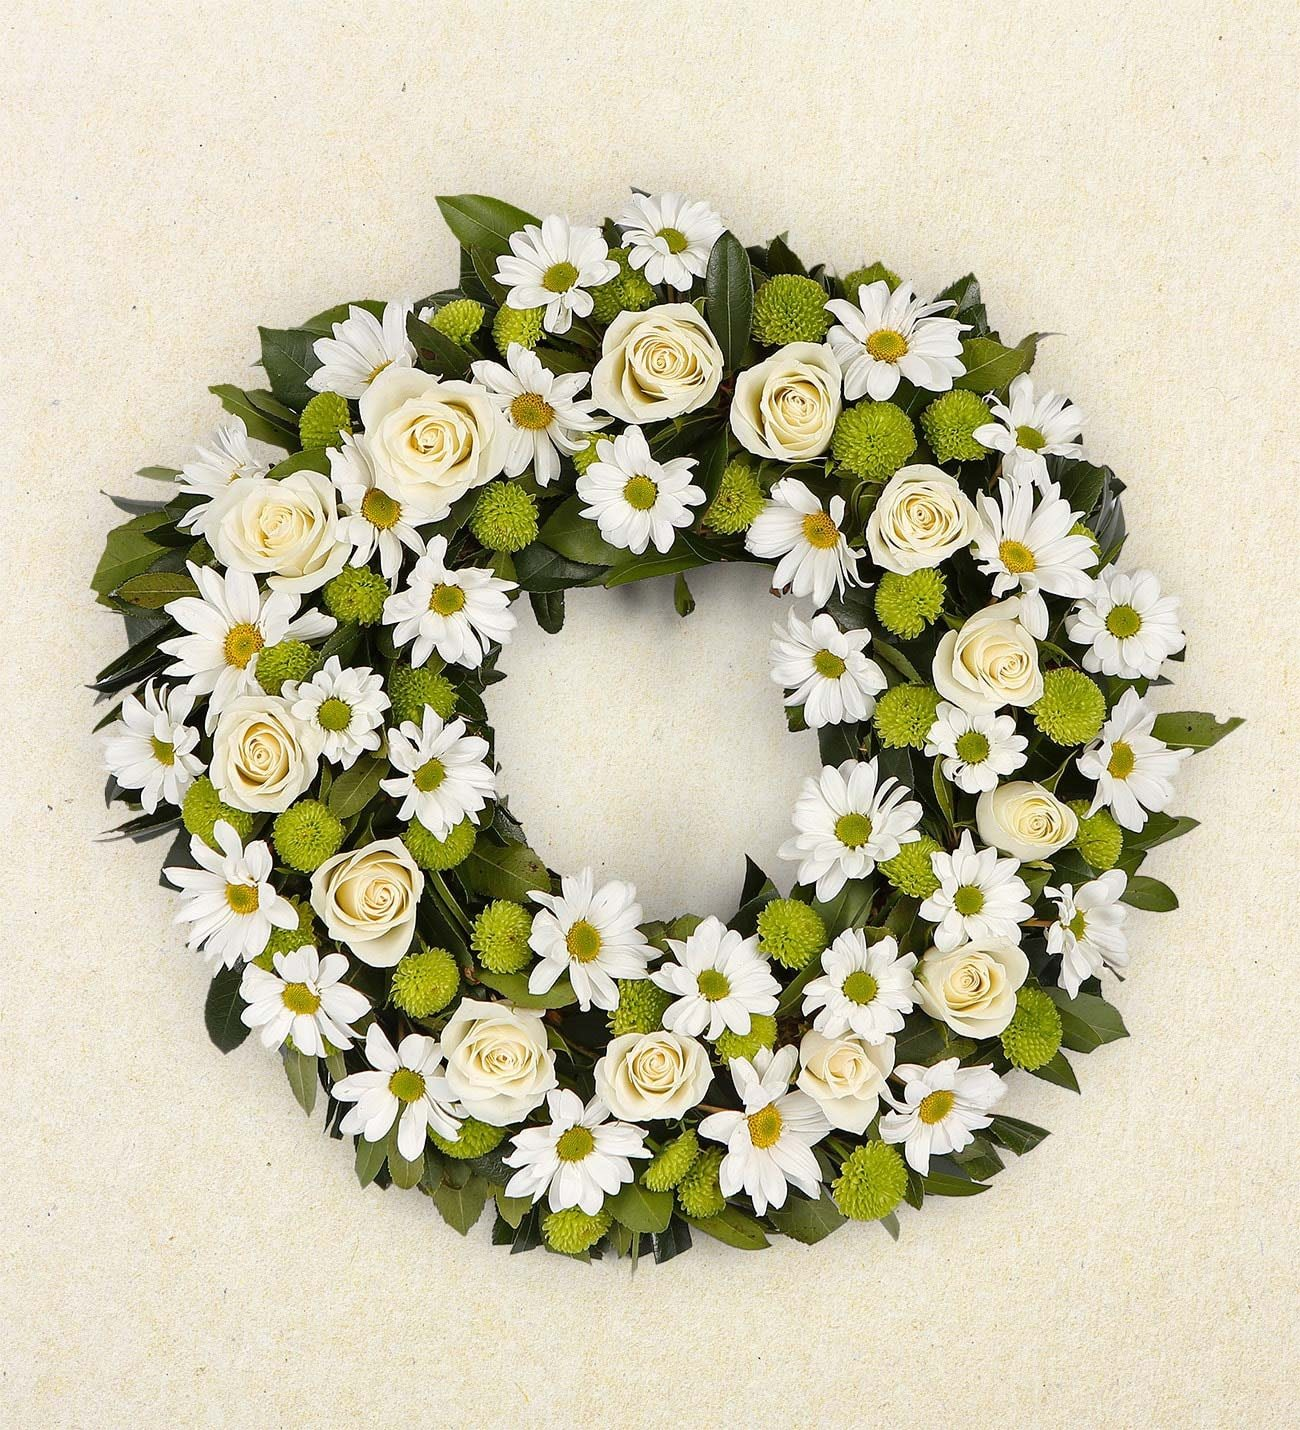 Affection Funeral Wreath